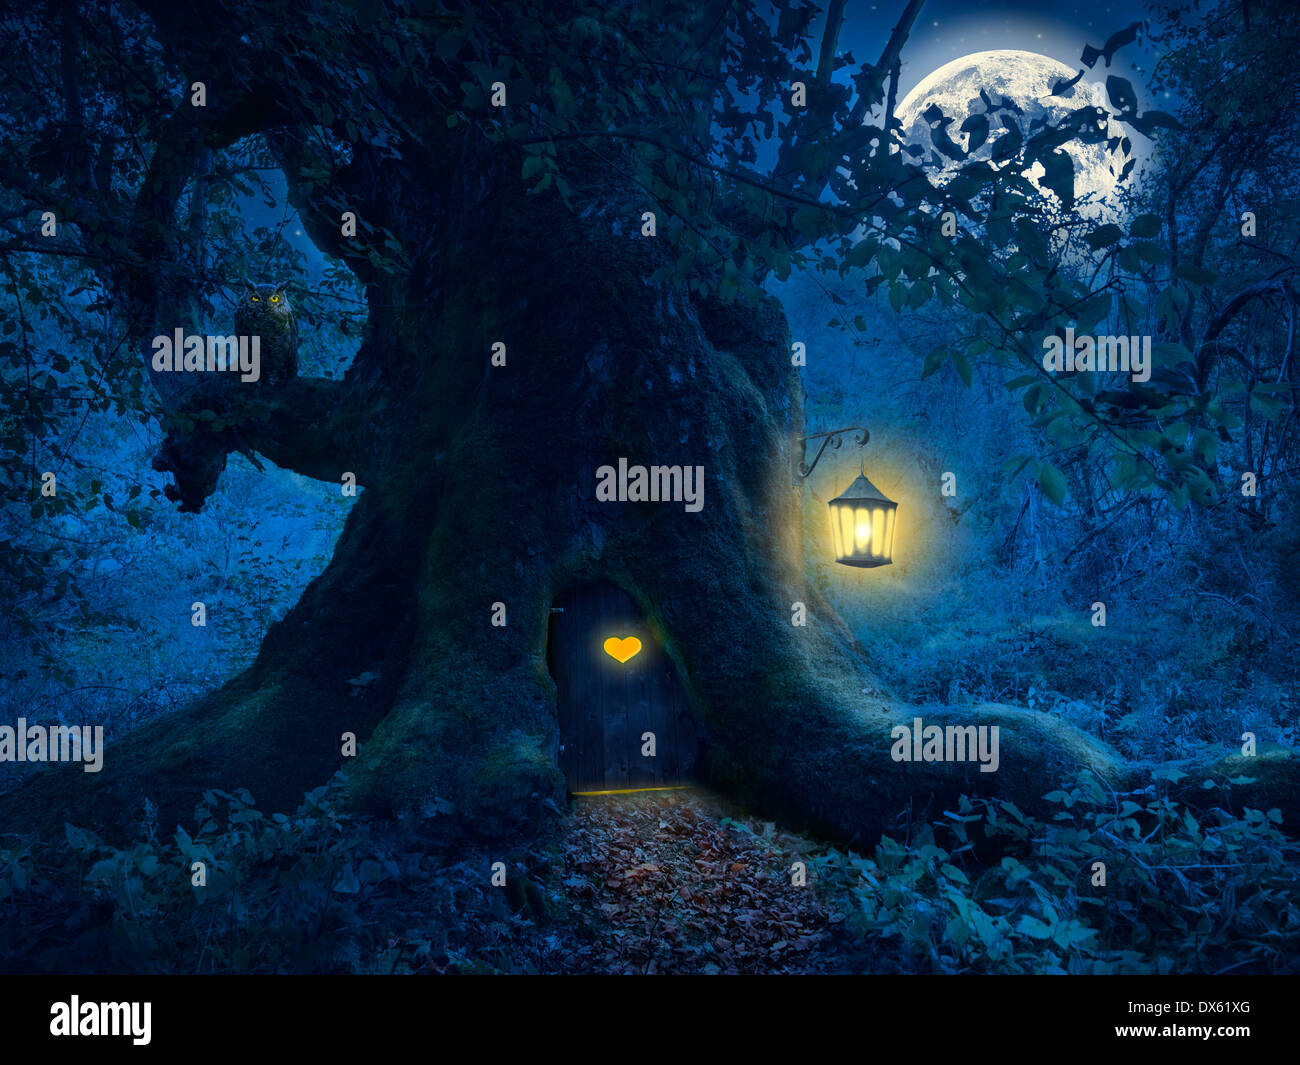 Magical night with a little home in the trunk of an ancient tree in the enchanted forest. - Stock Image